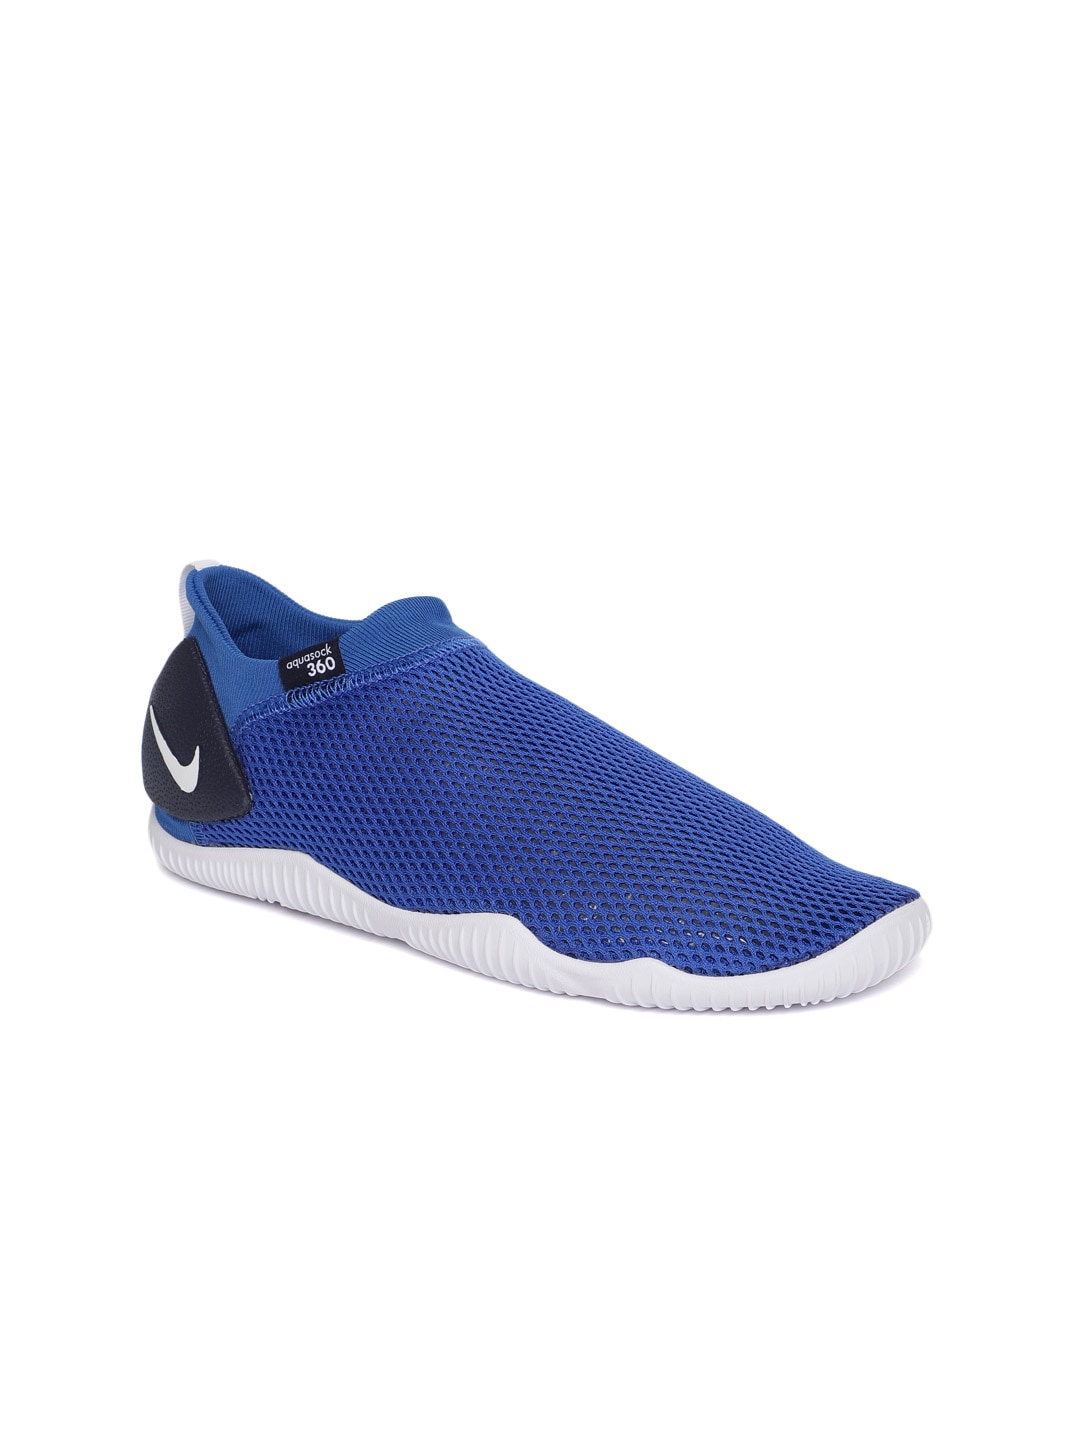 24a57f0de964 Nike Slip On Shoes - Buy Nike Slip On Shoes online in India